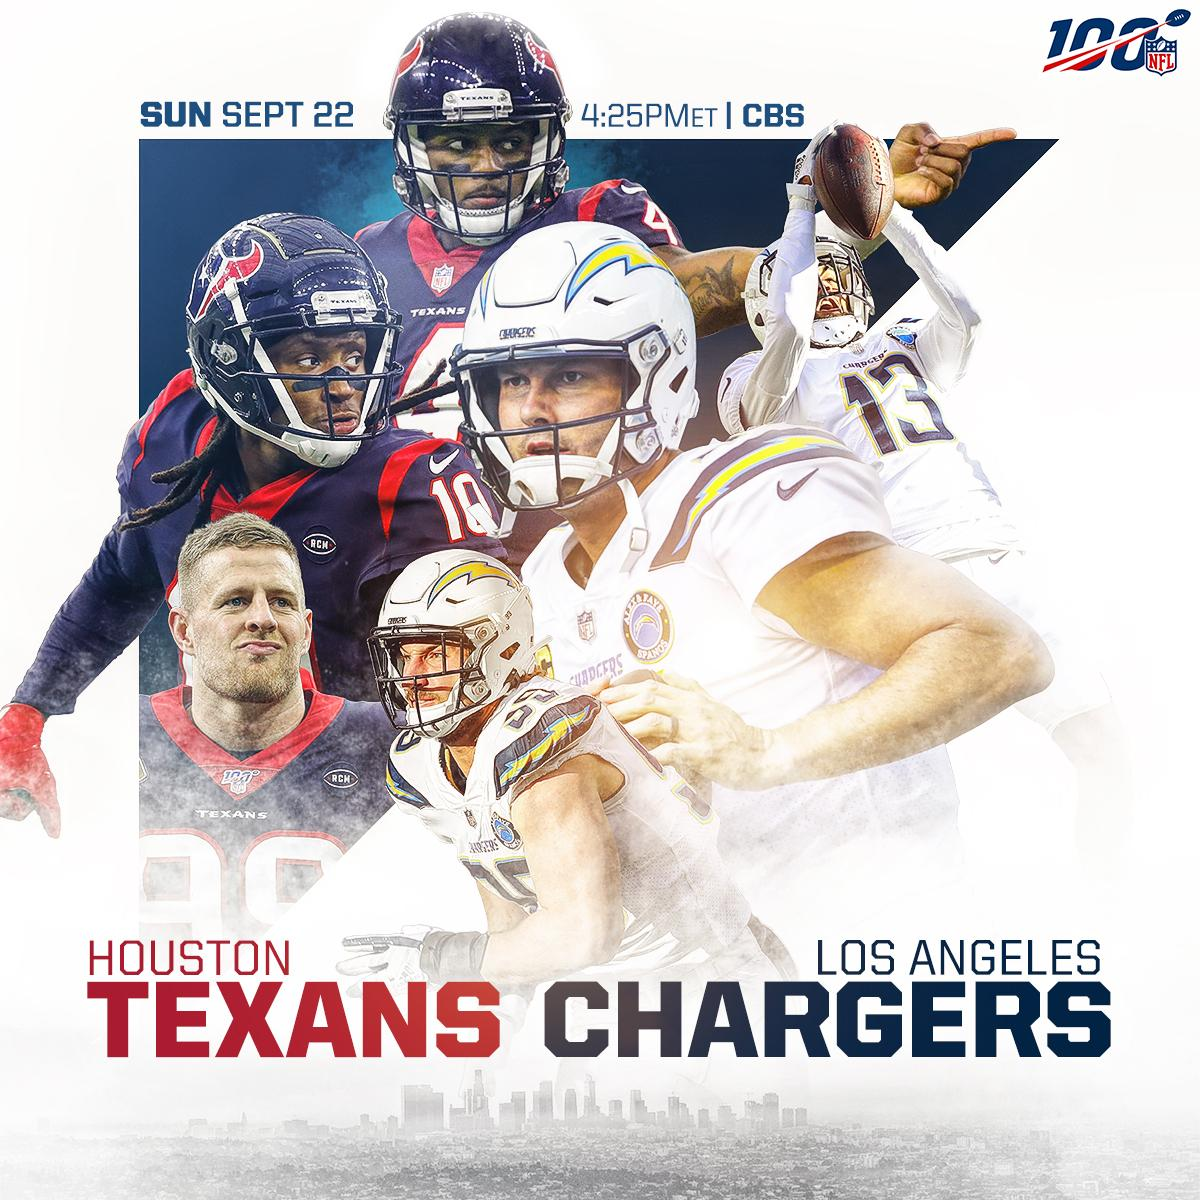 THIS SUNDAY: @deshaunwatson and the @HoustonTexans head to LA to face Rivers and the @Chargers! #Texans #BoltUp  📺: #HOUvsLAC | Sunday at 4:25pm ET on CBS 📱: NFL App // Yahoo Sports App